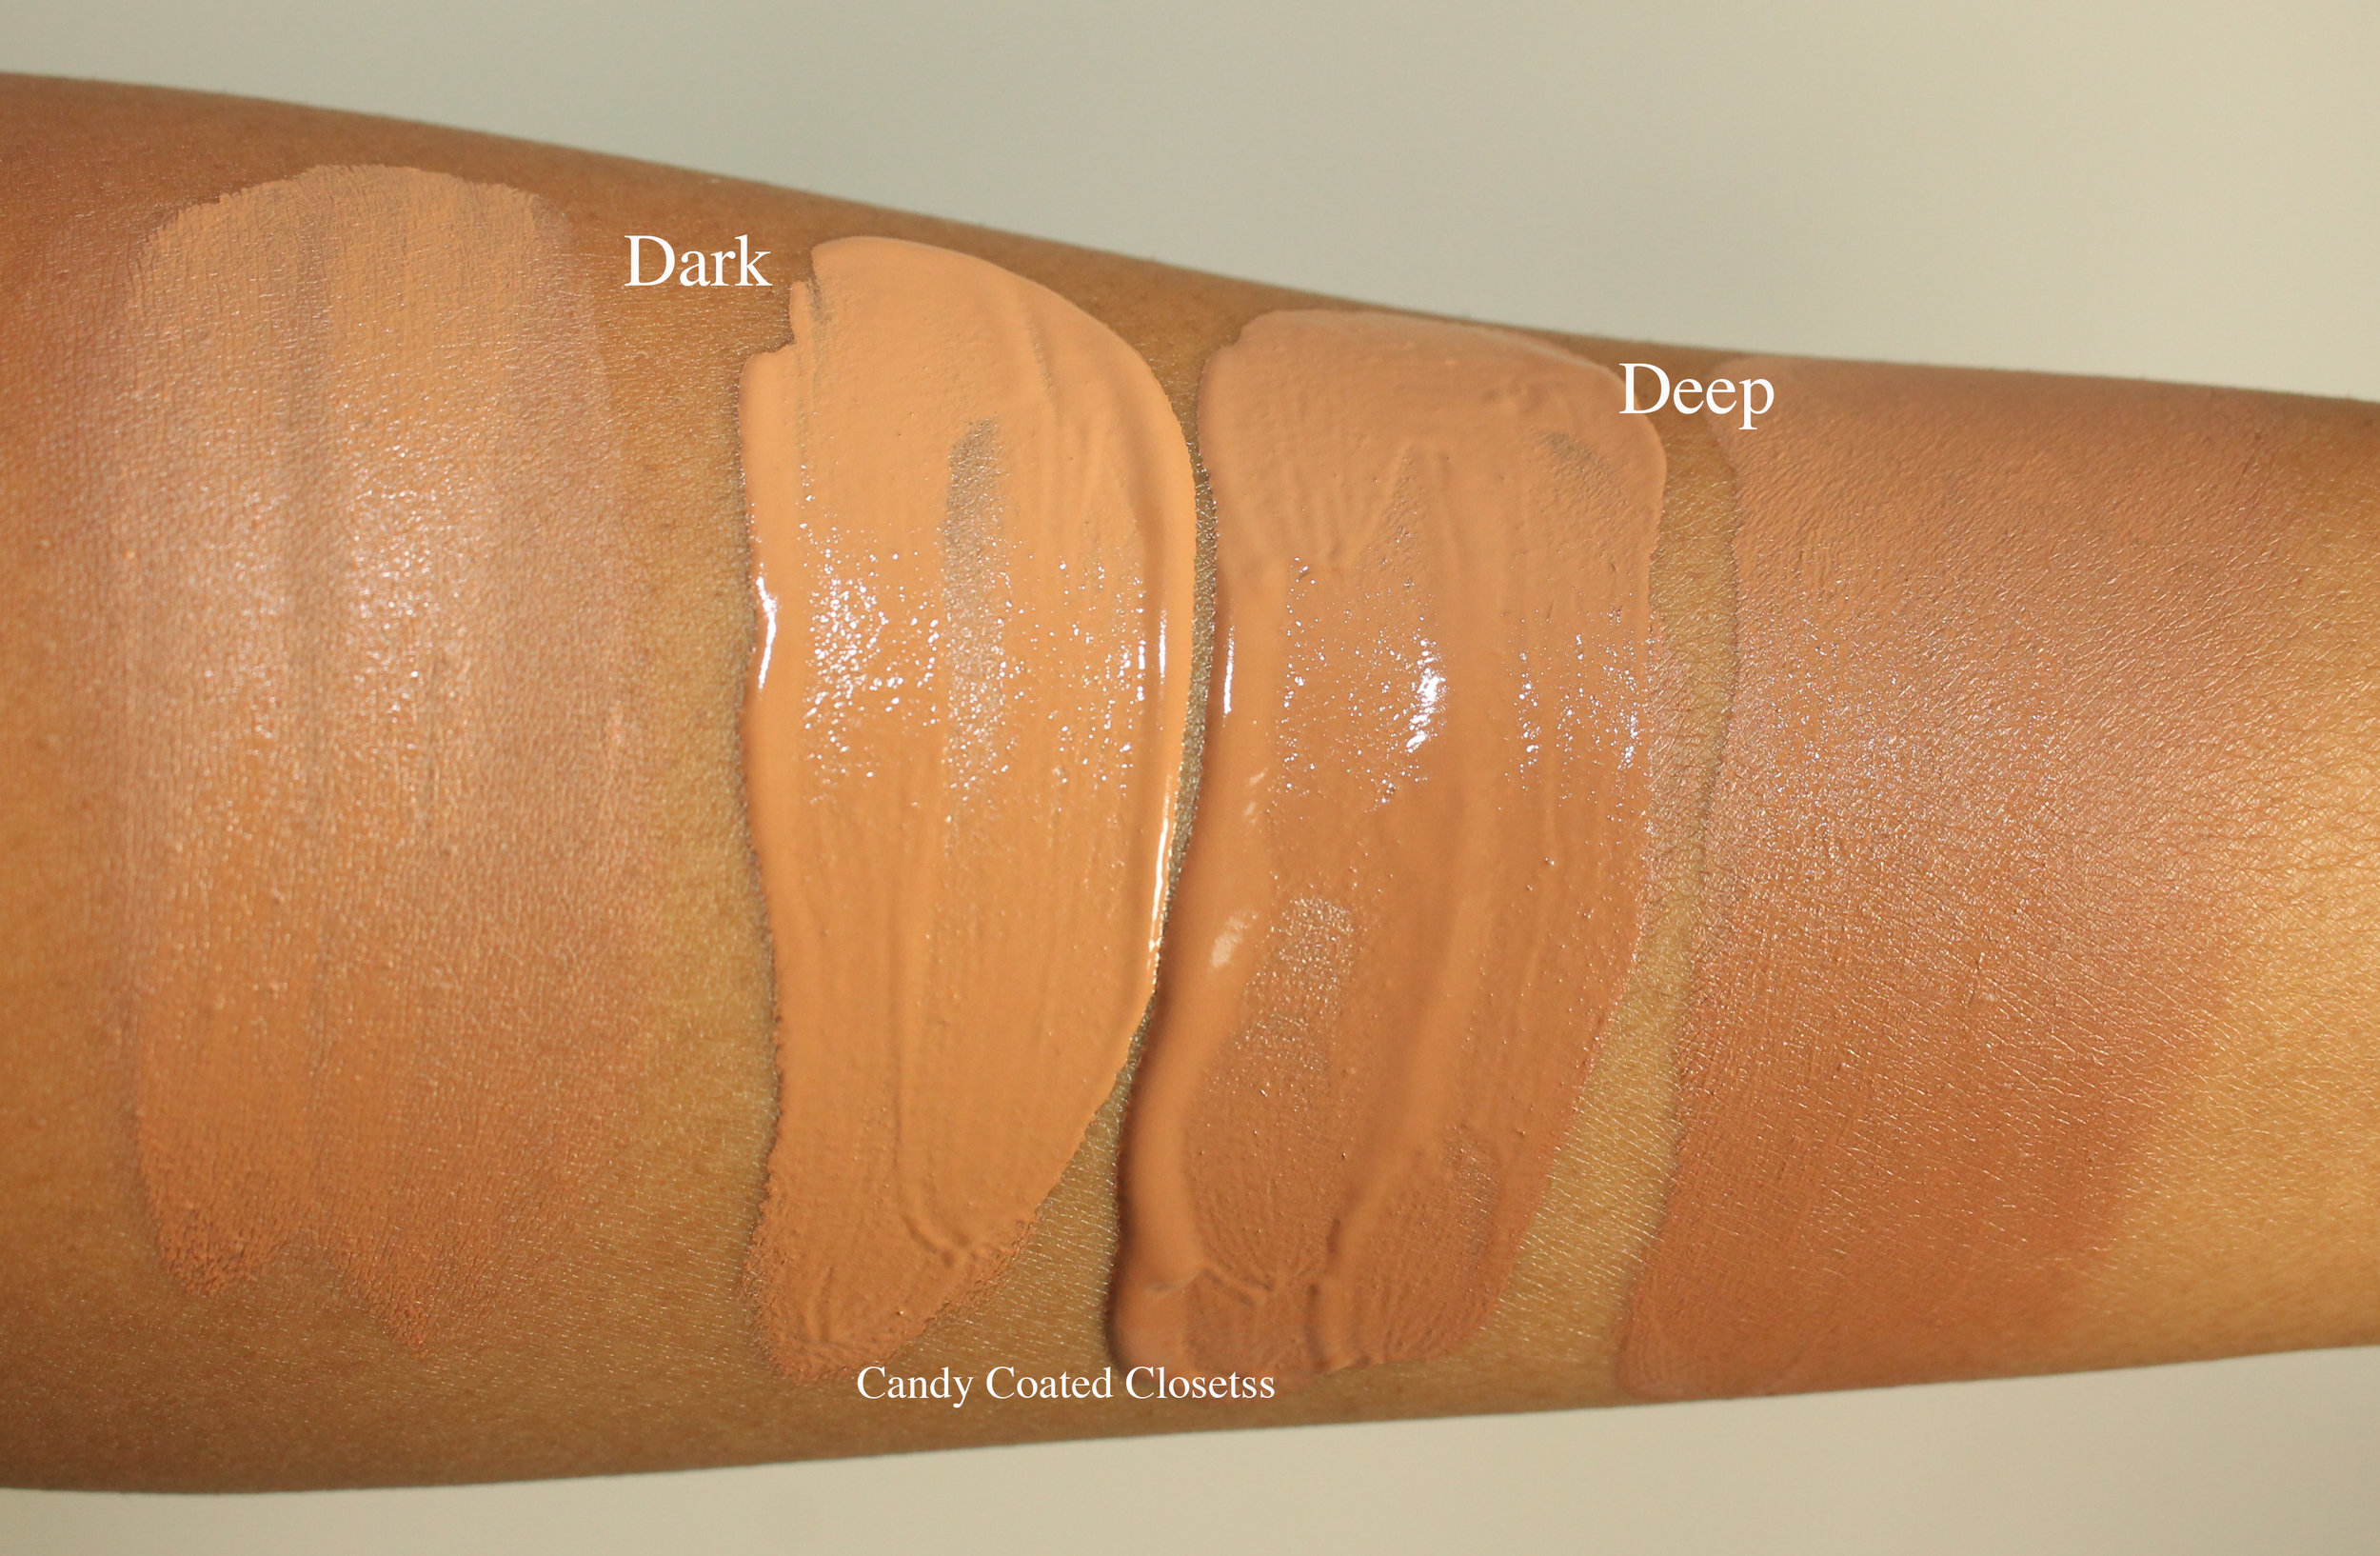 Naked Skin One & Done Hybrid Complexion Perfector by Urban Decay #11